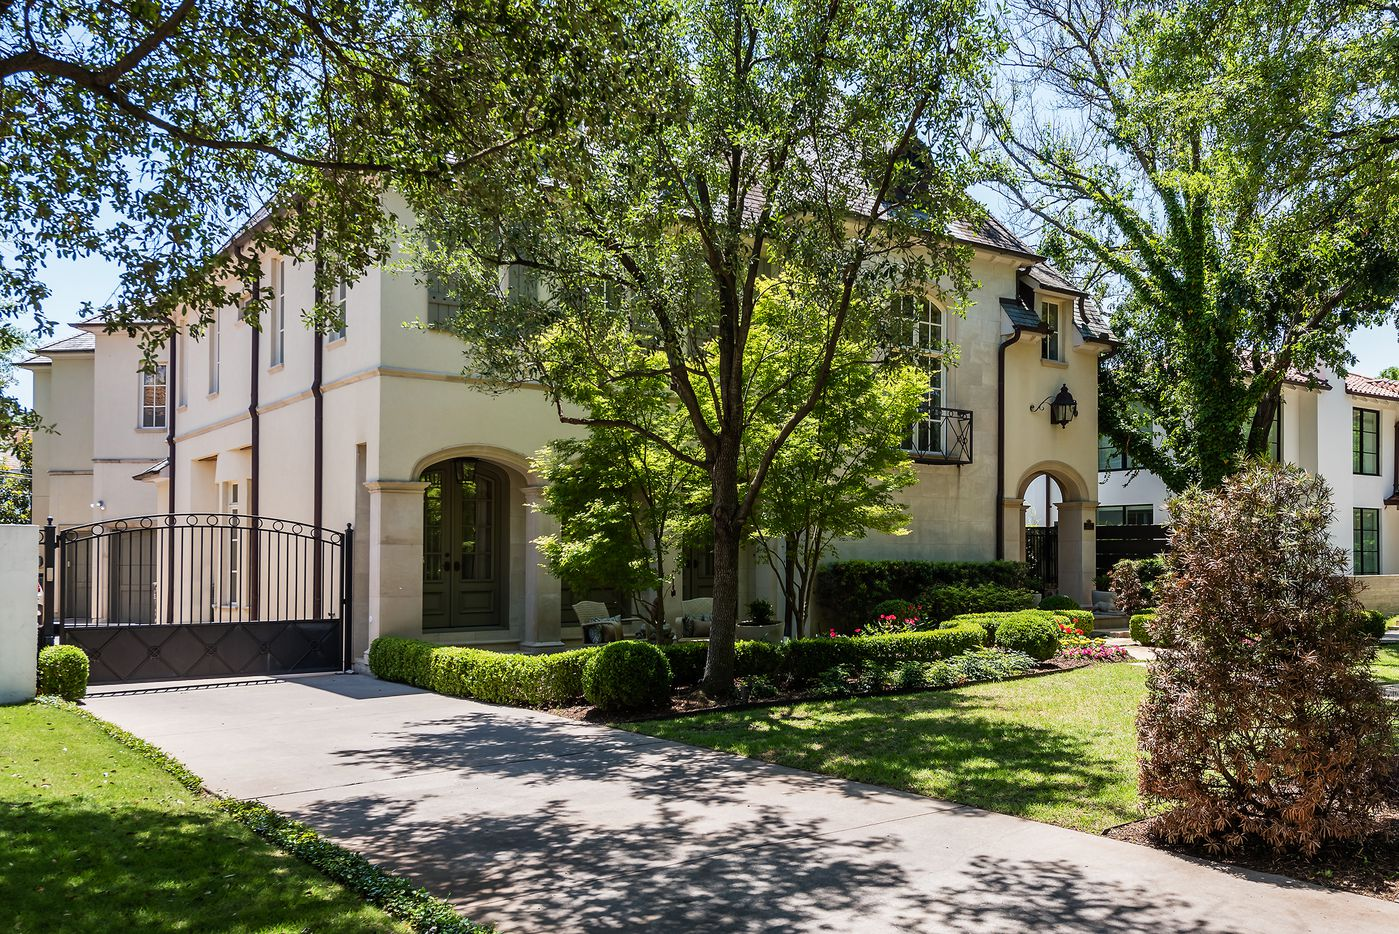 Take a look at the home at 4417 Beverly Drive in Highland Park.